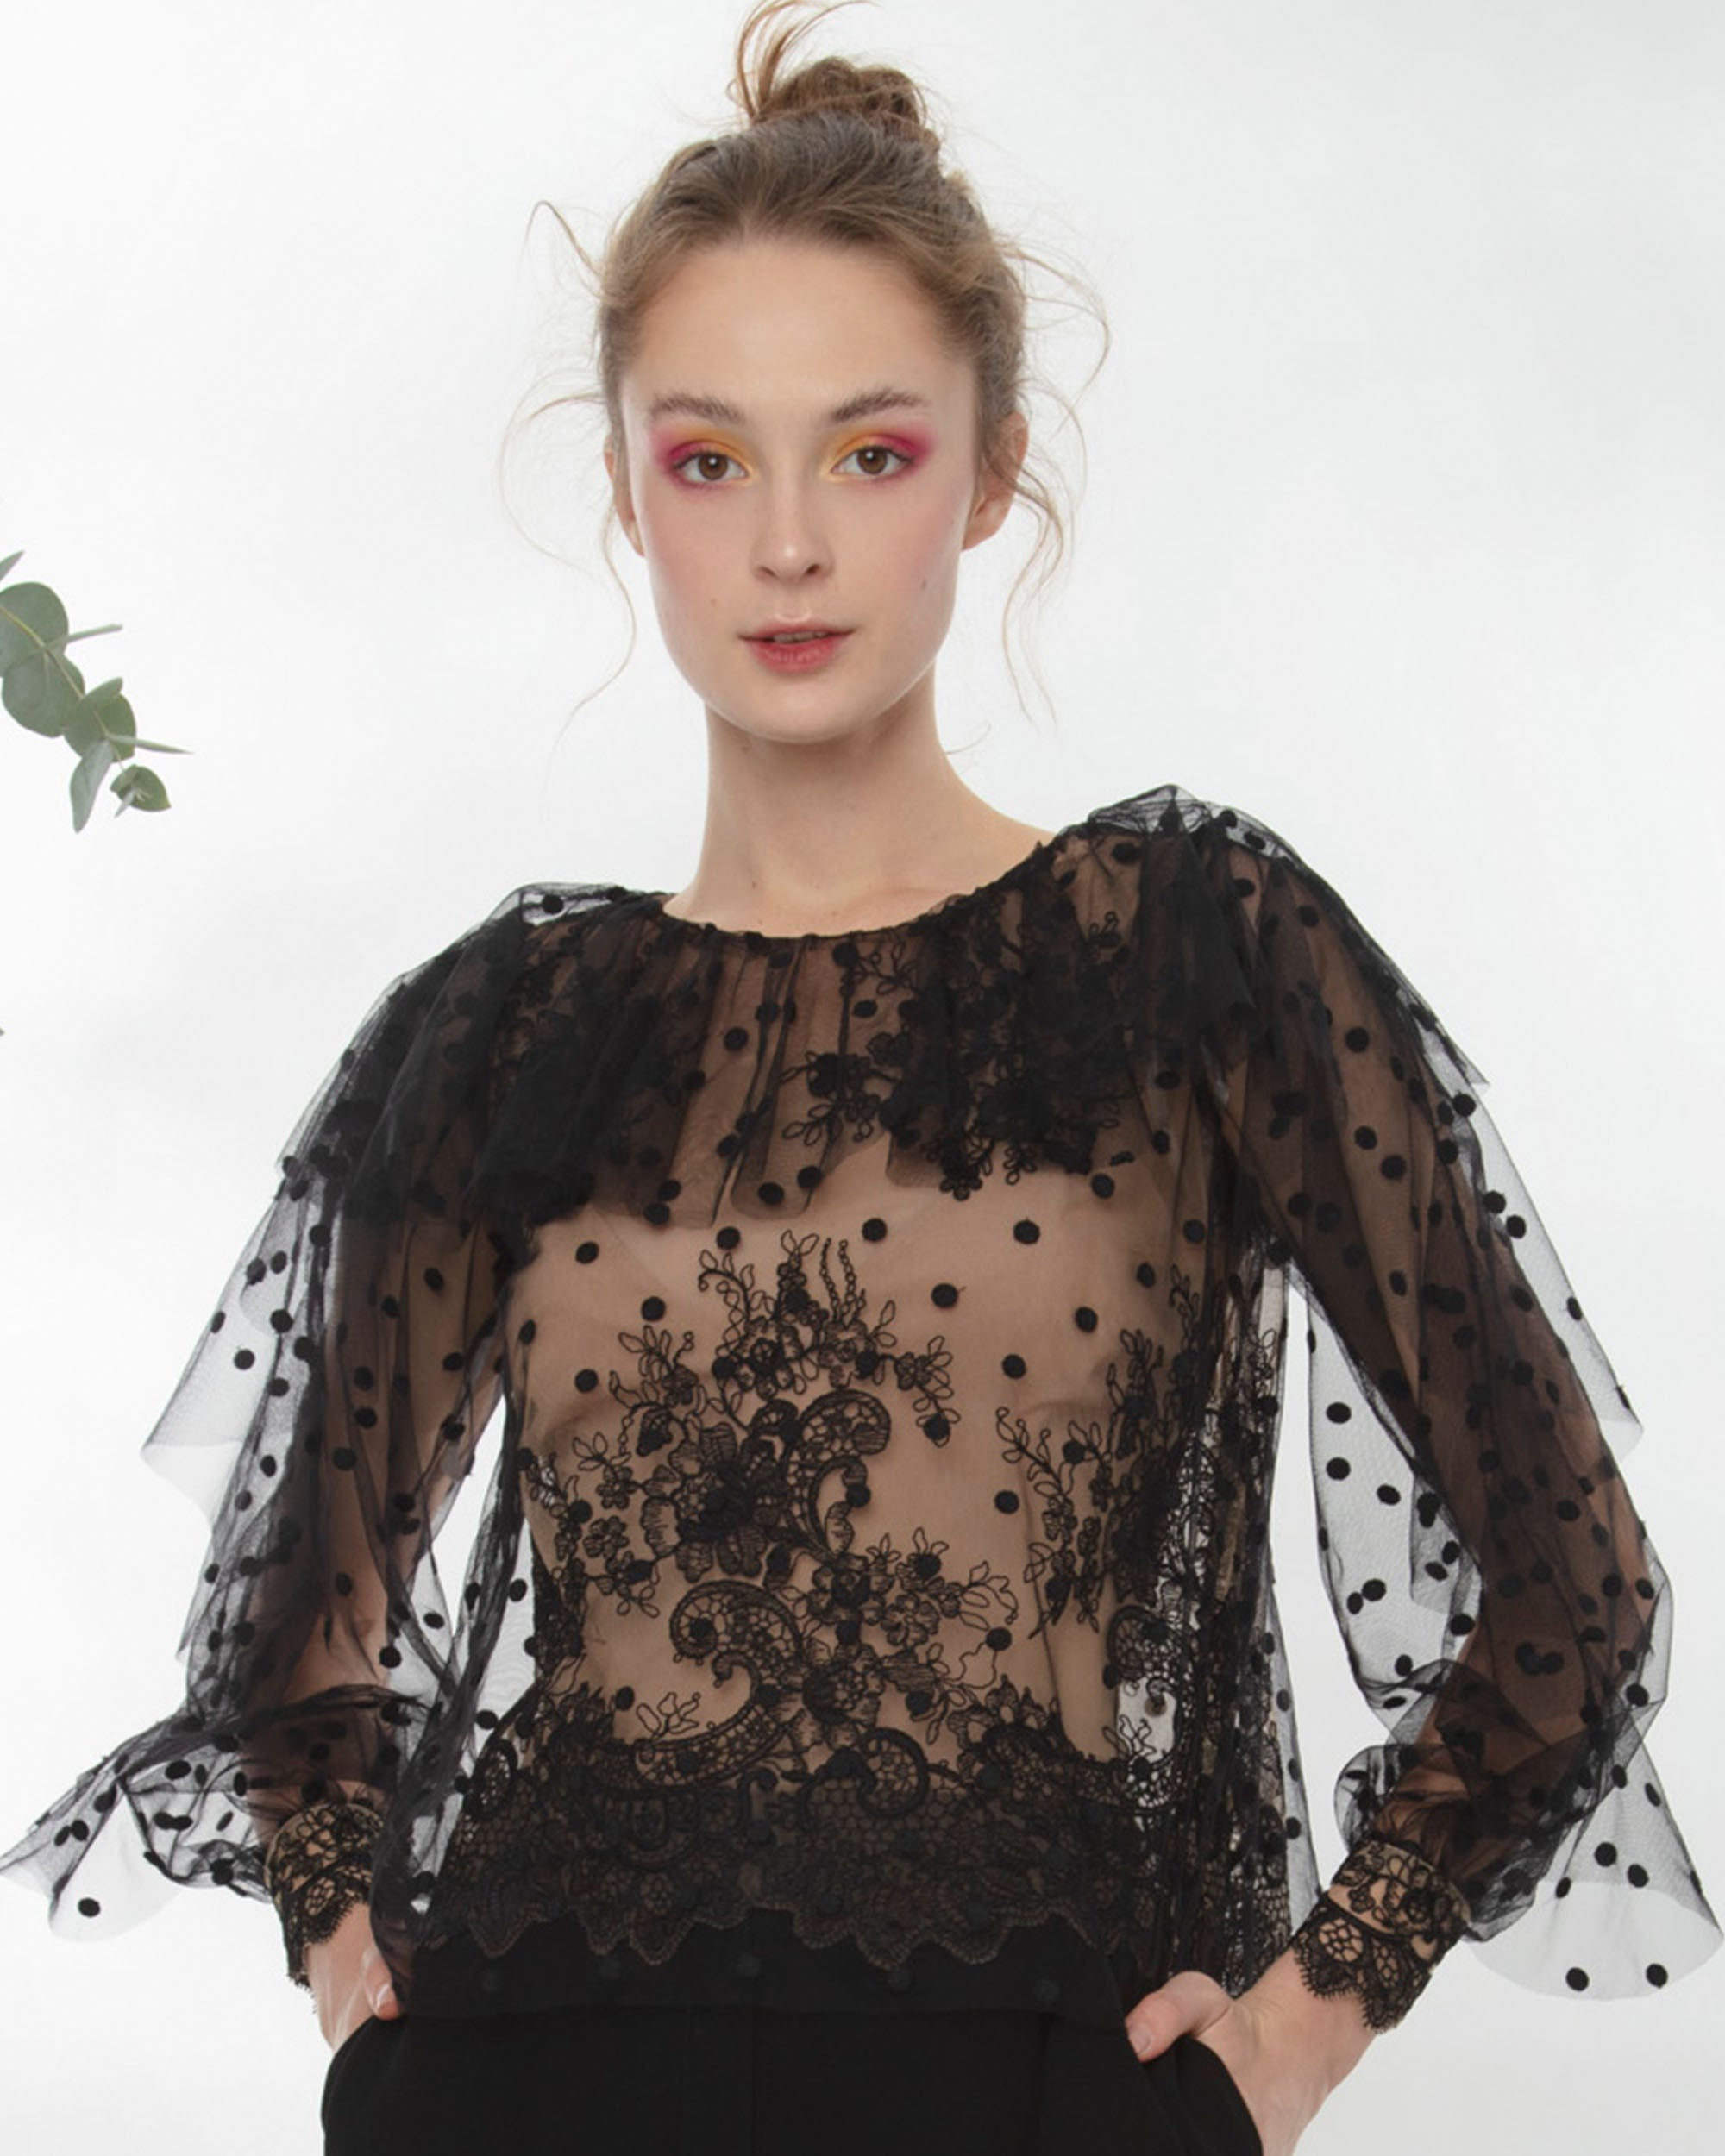 Lace Top With Ruffles